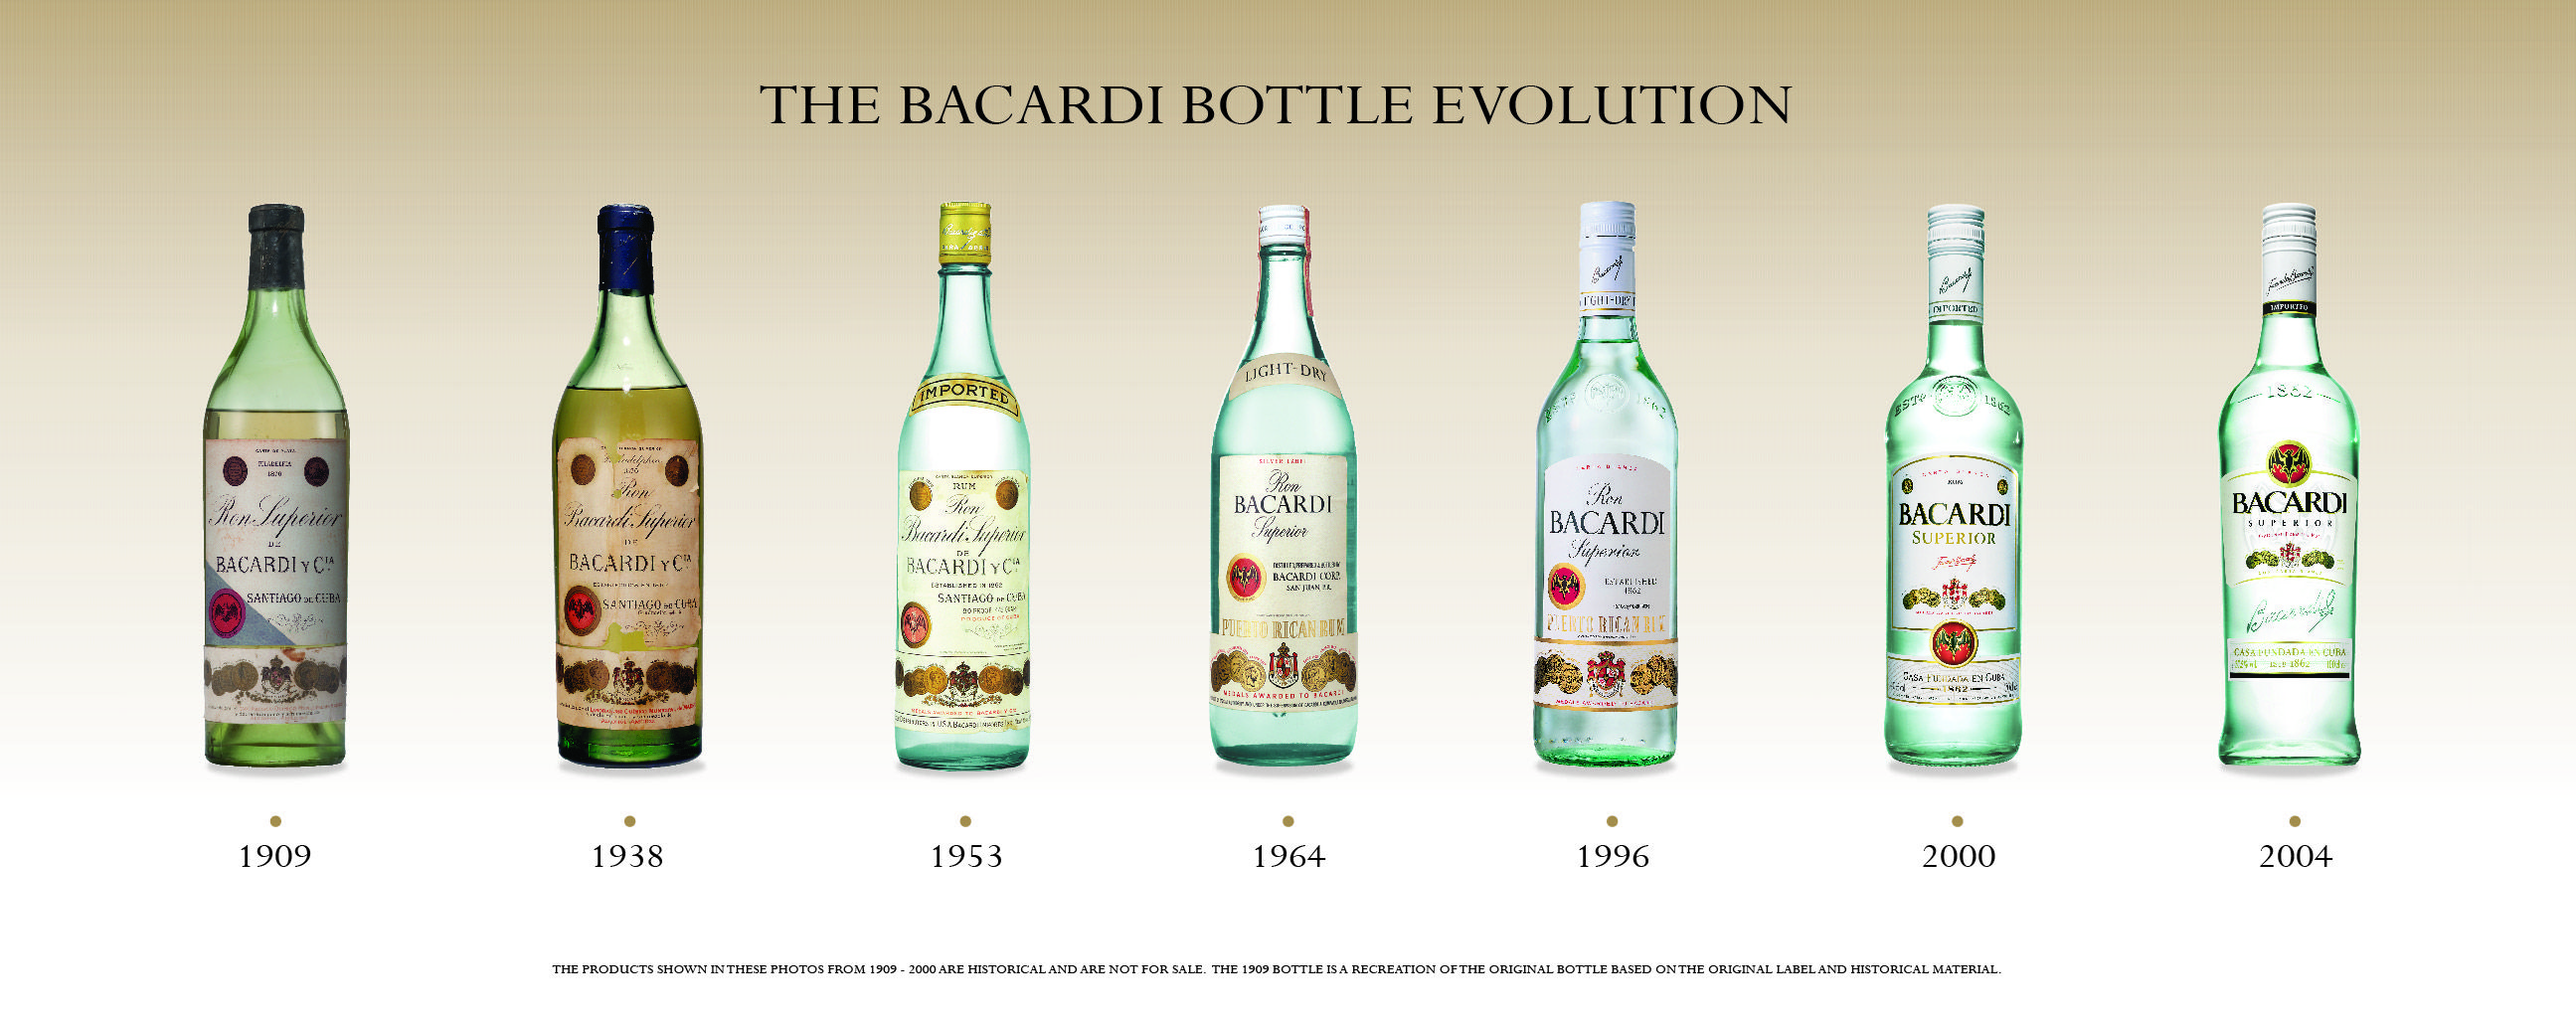 bacardi - bottle evolution | bacardi | Pinterest | Rum, Bottle and ...